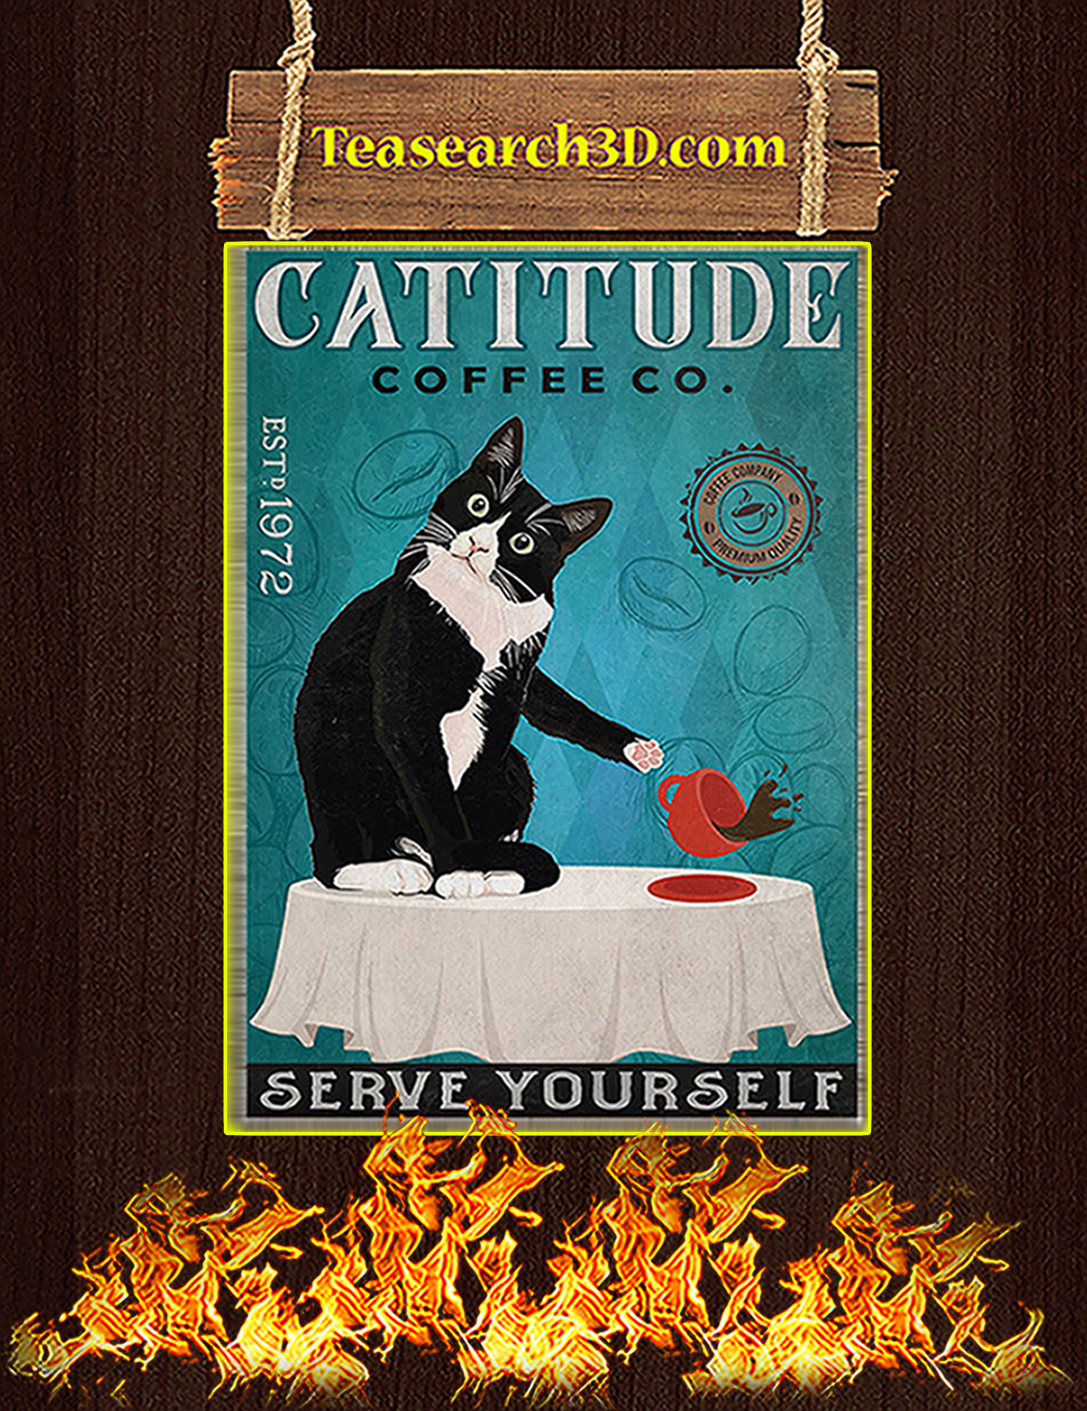 Catitude coffee co serve yourself poster A2